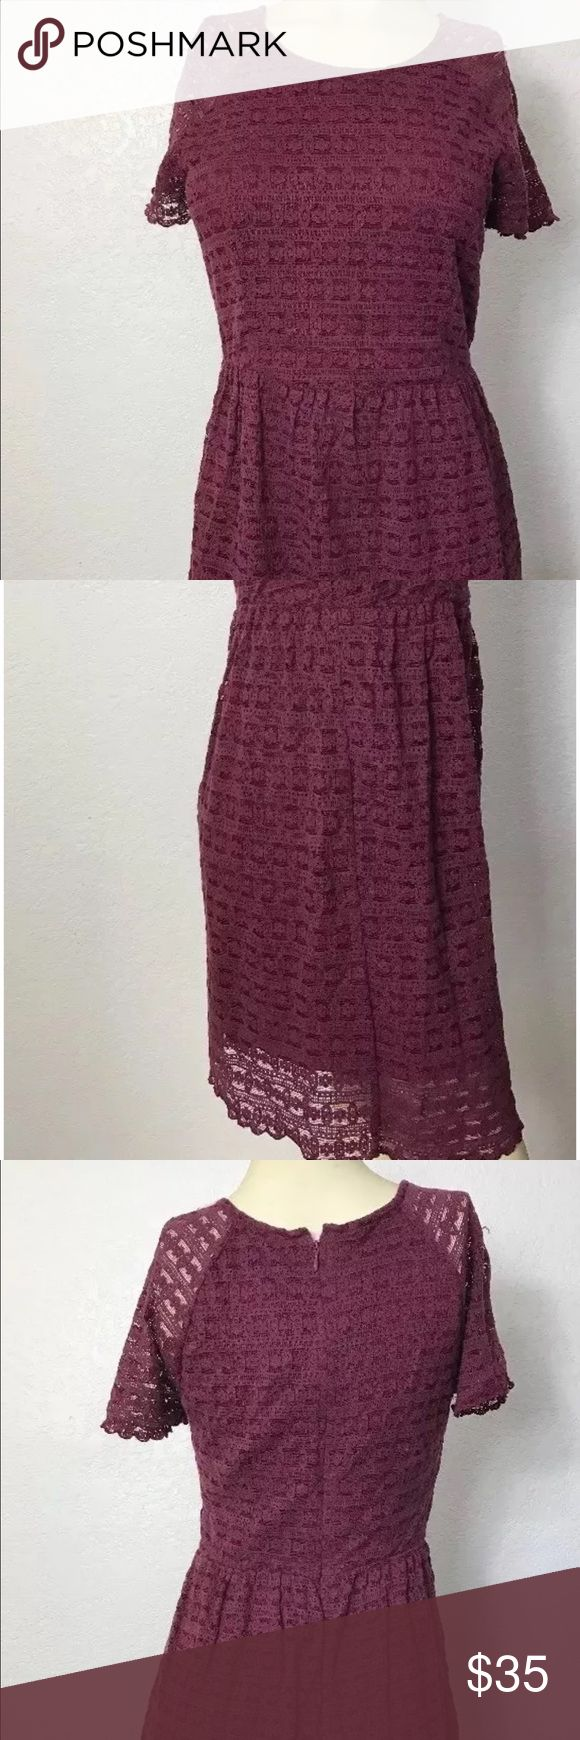 """Free People Maroon Skater Dress size 8 Free People Maroon Skater Dress size 8  bust 32"""" length 34"""" Free People Dresses High Low"""